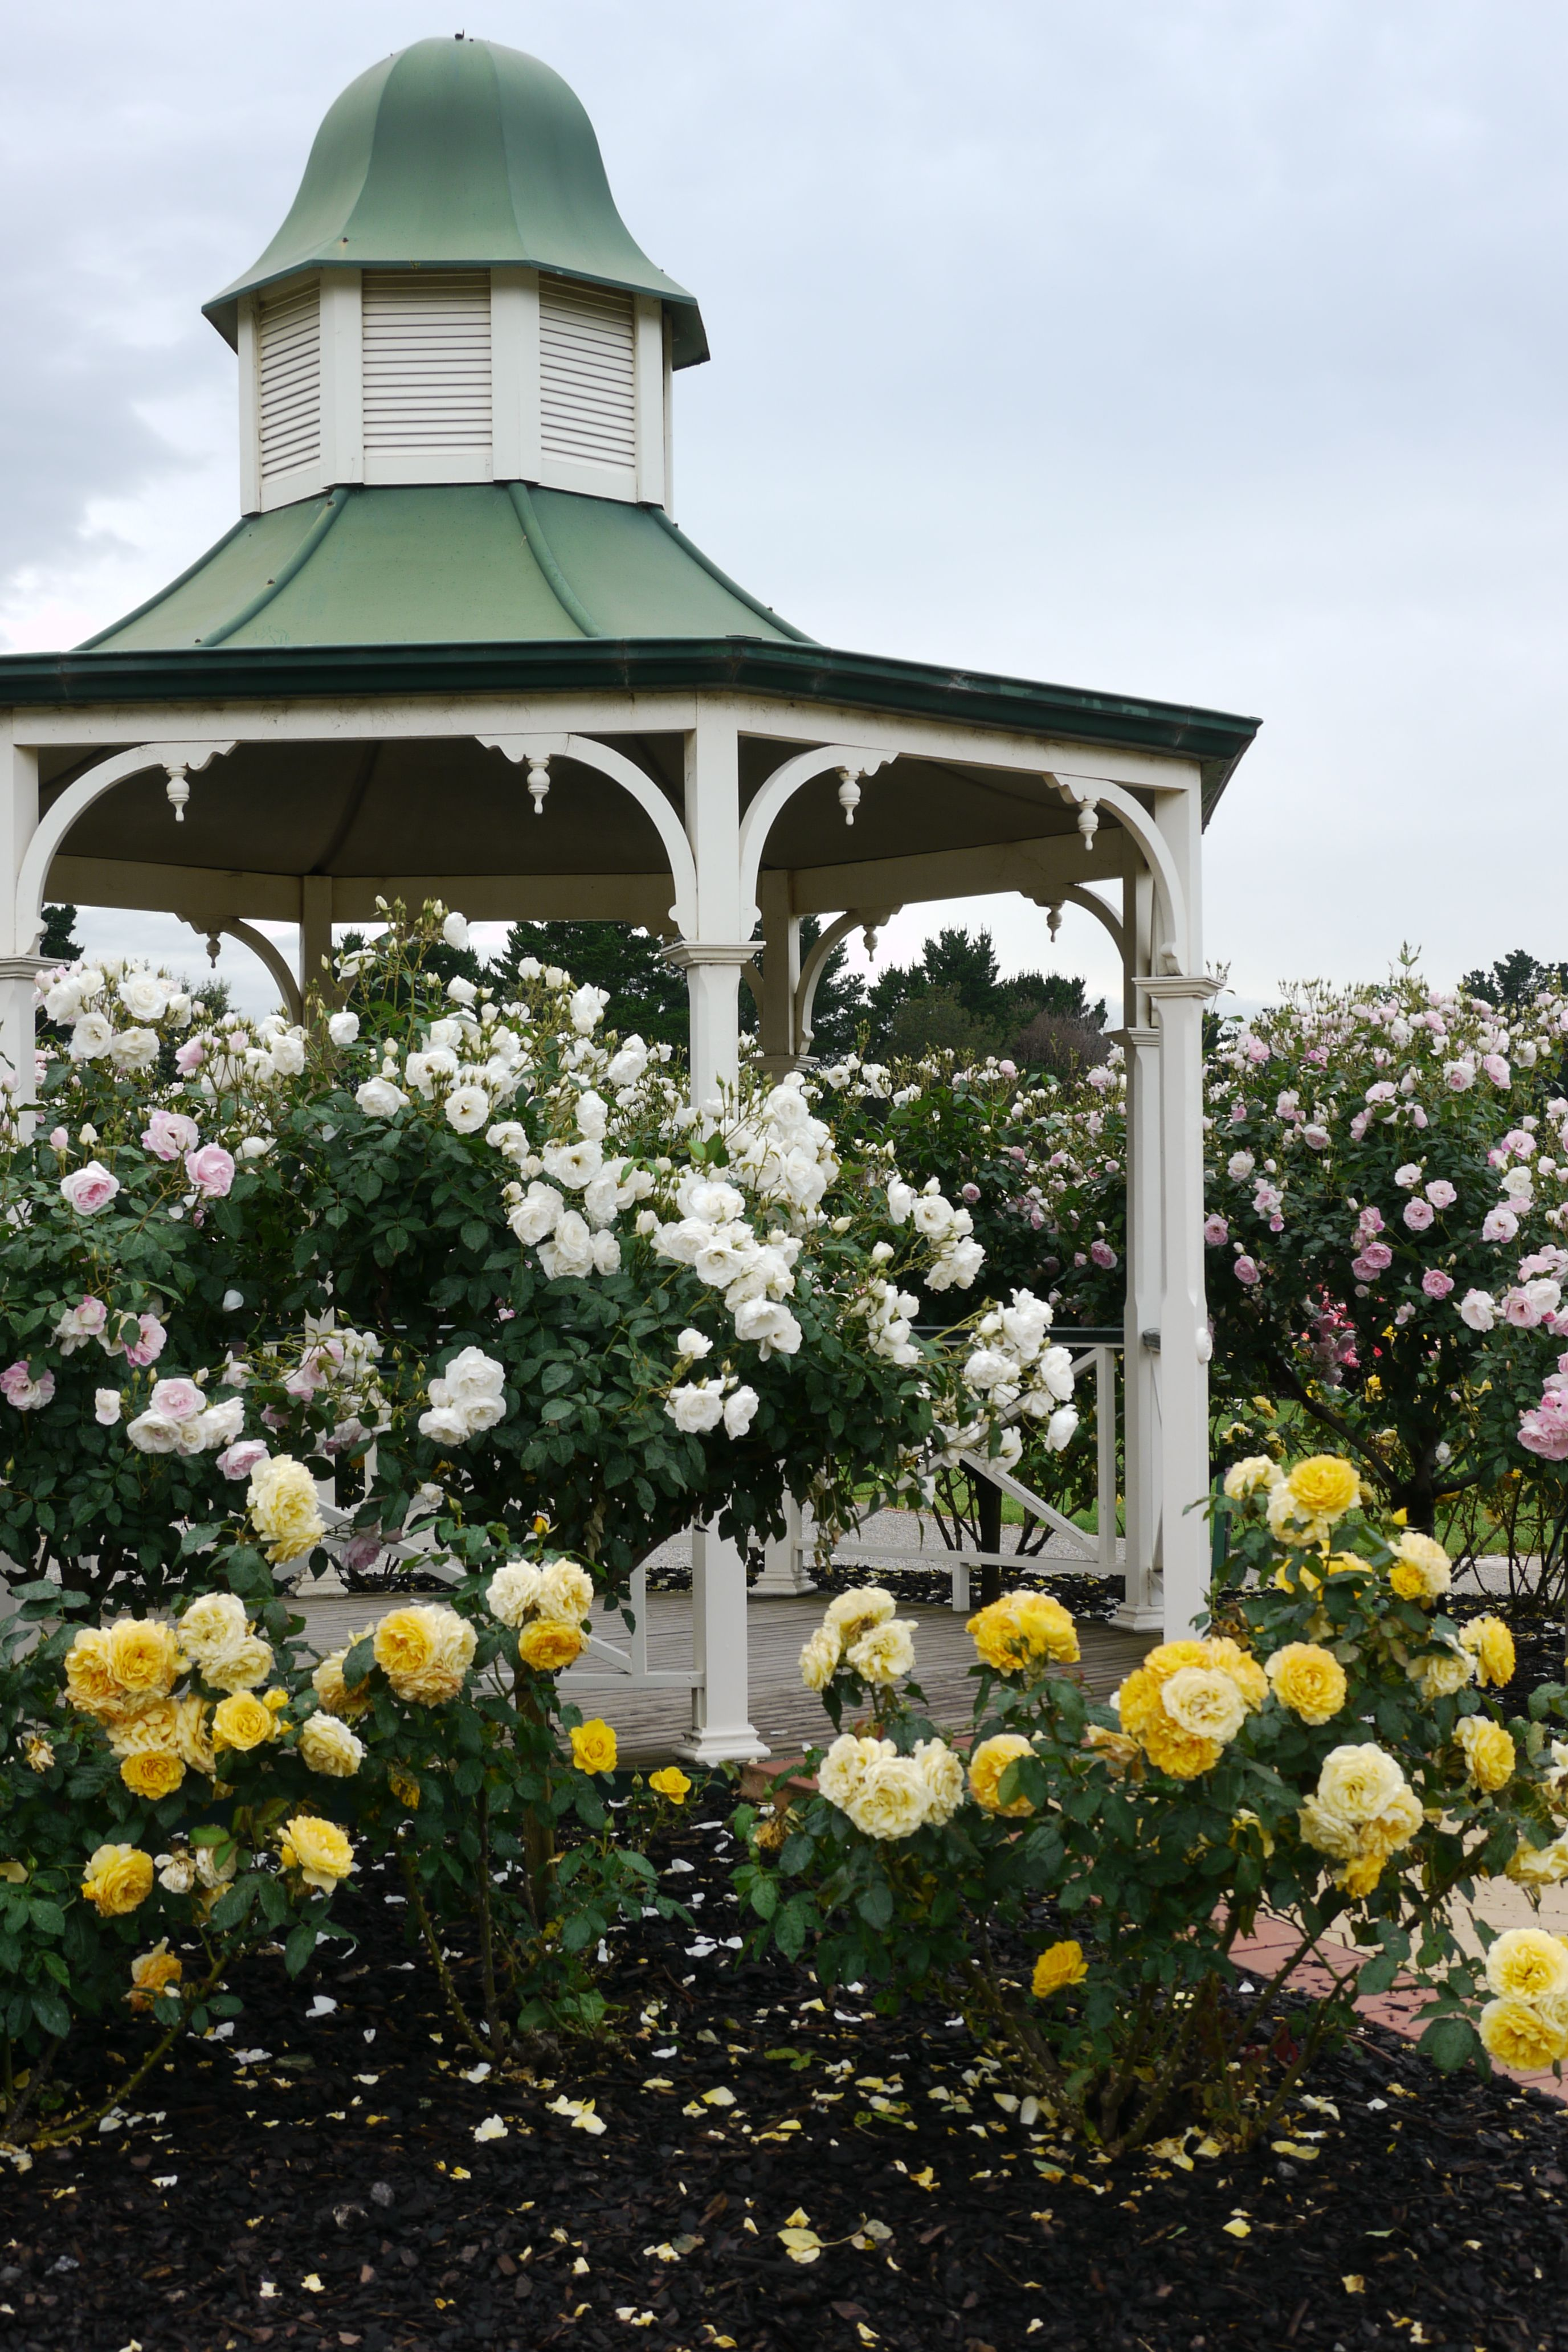 Rotunda, Rose garden, Werribee, Melbourne and some